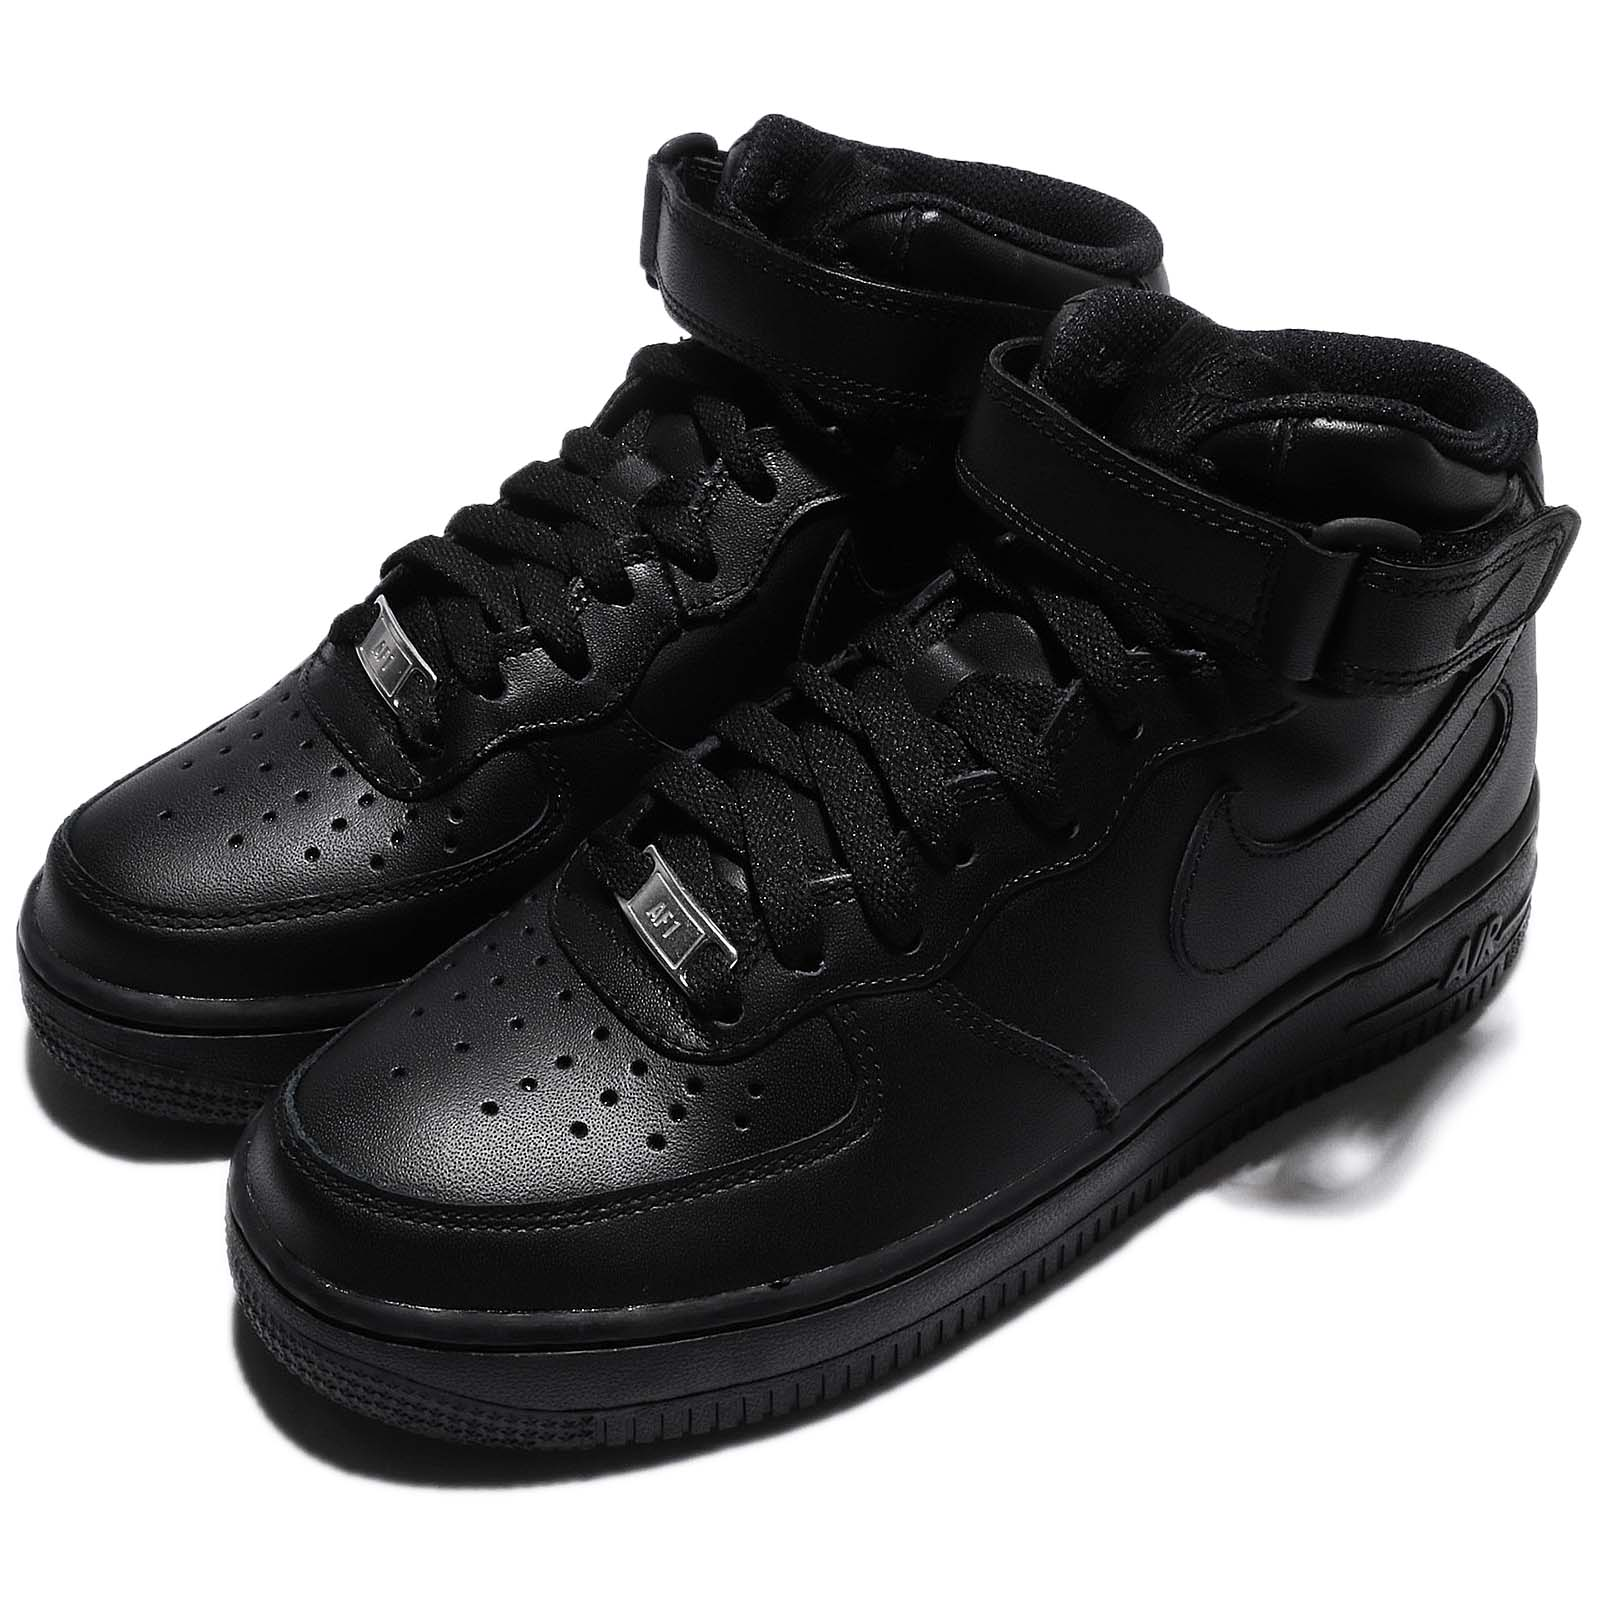 Nike 籃球鞋 Air Force 1 Mid 女鞋 366731-001